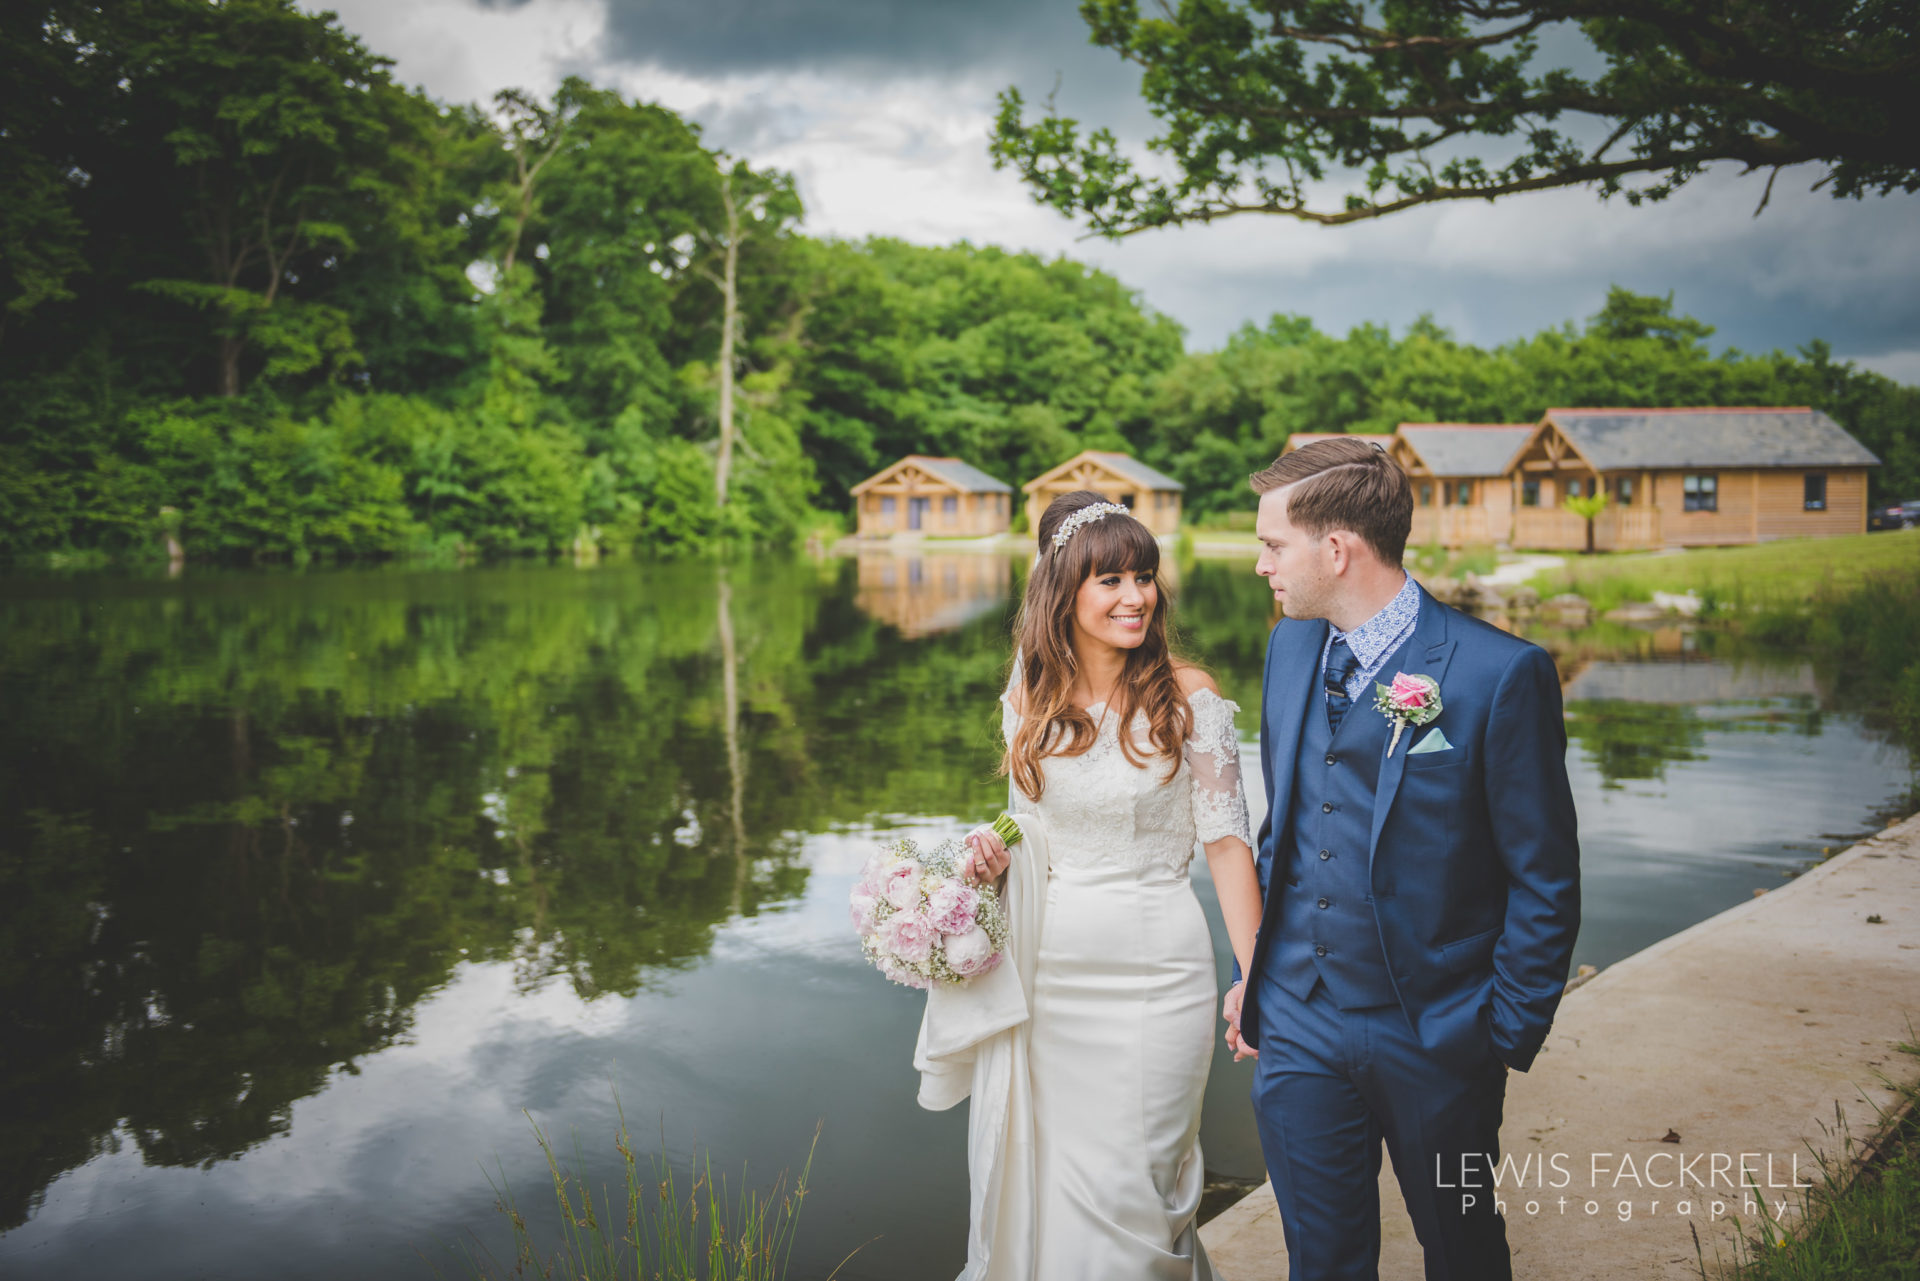 Lewis-Fackrell-Photography-Wedding-Photographer-Cardiff-Swansea-Bristol-Newport-Pre-wedding-photoshoot-cerian-dan-canada-lake-lodge-llantrisant--64